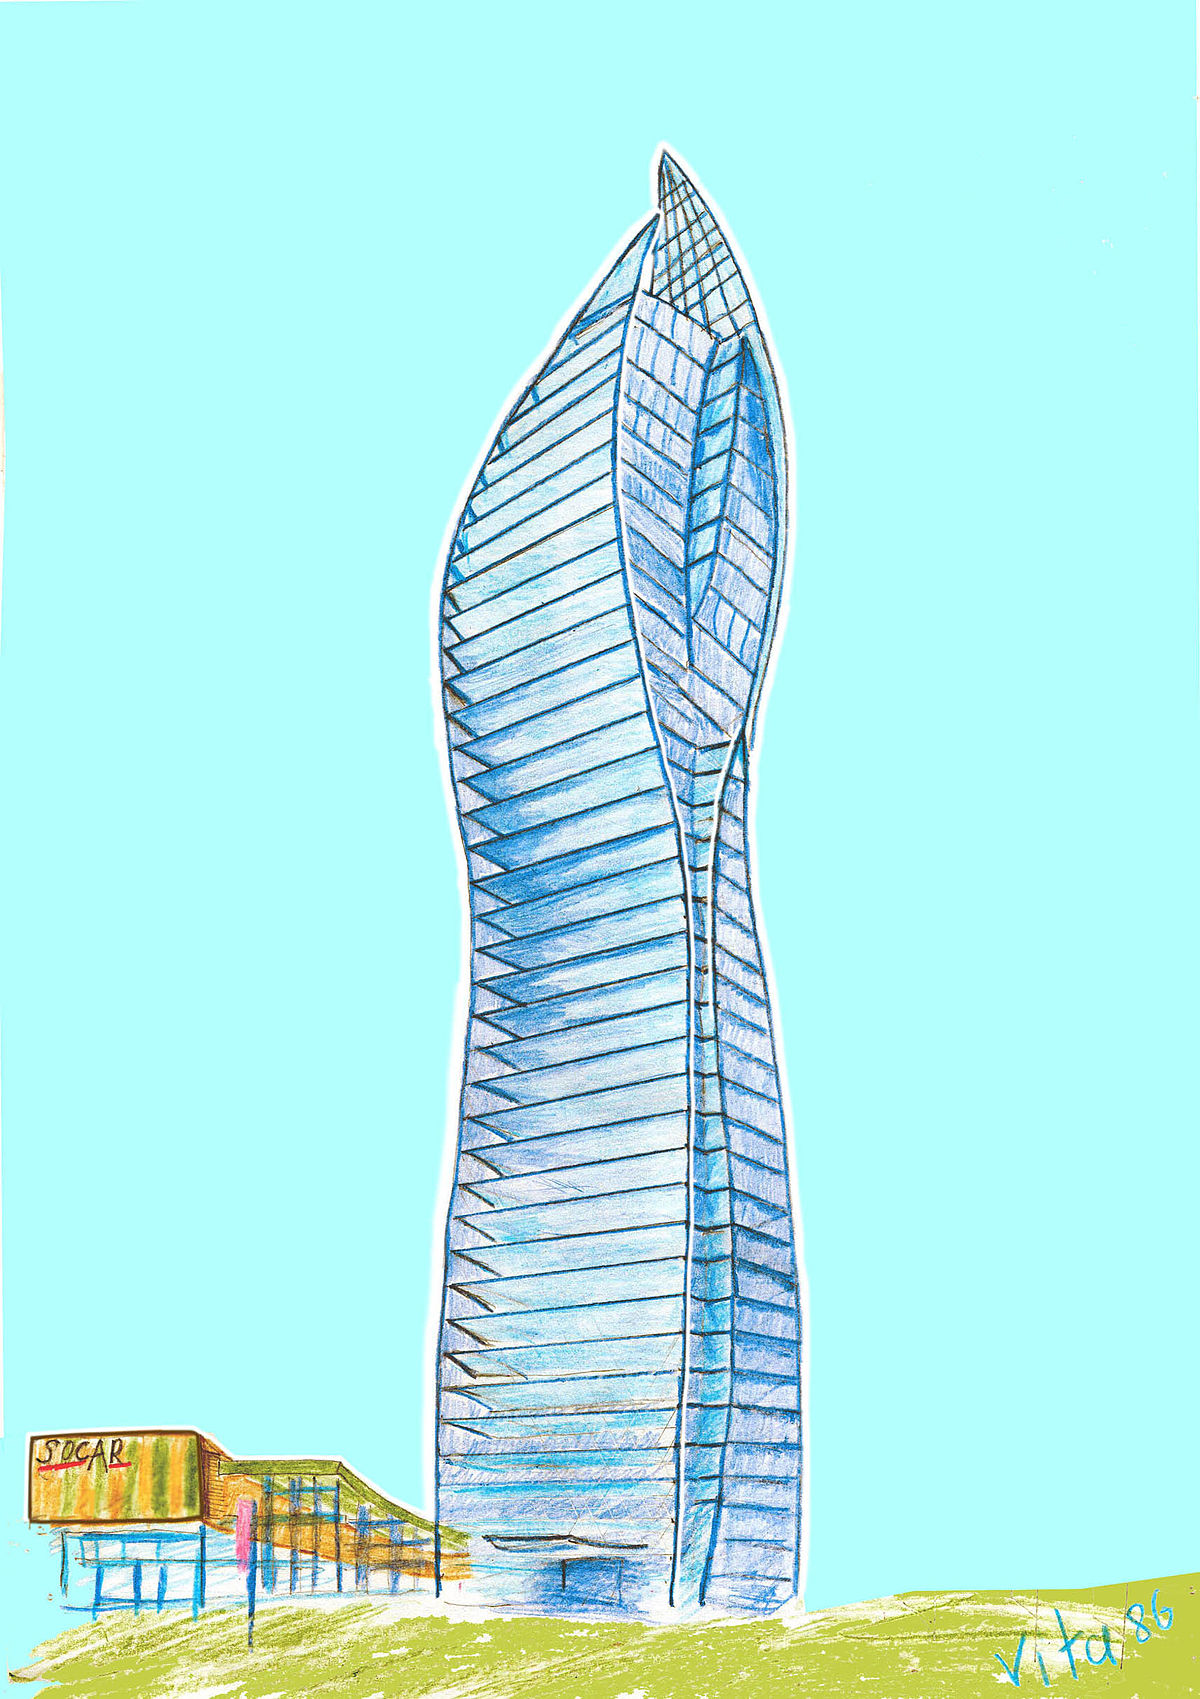 Socar Tower Wikipedia